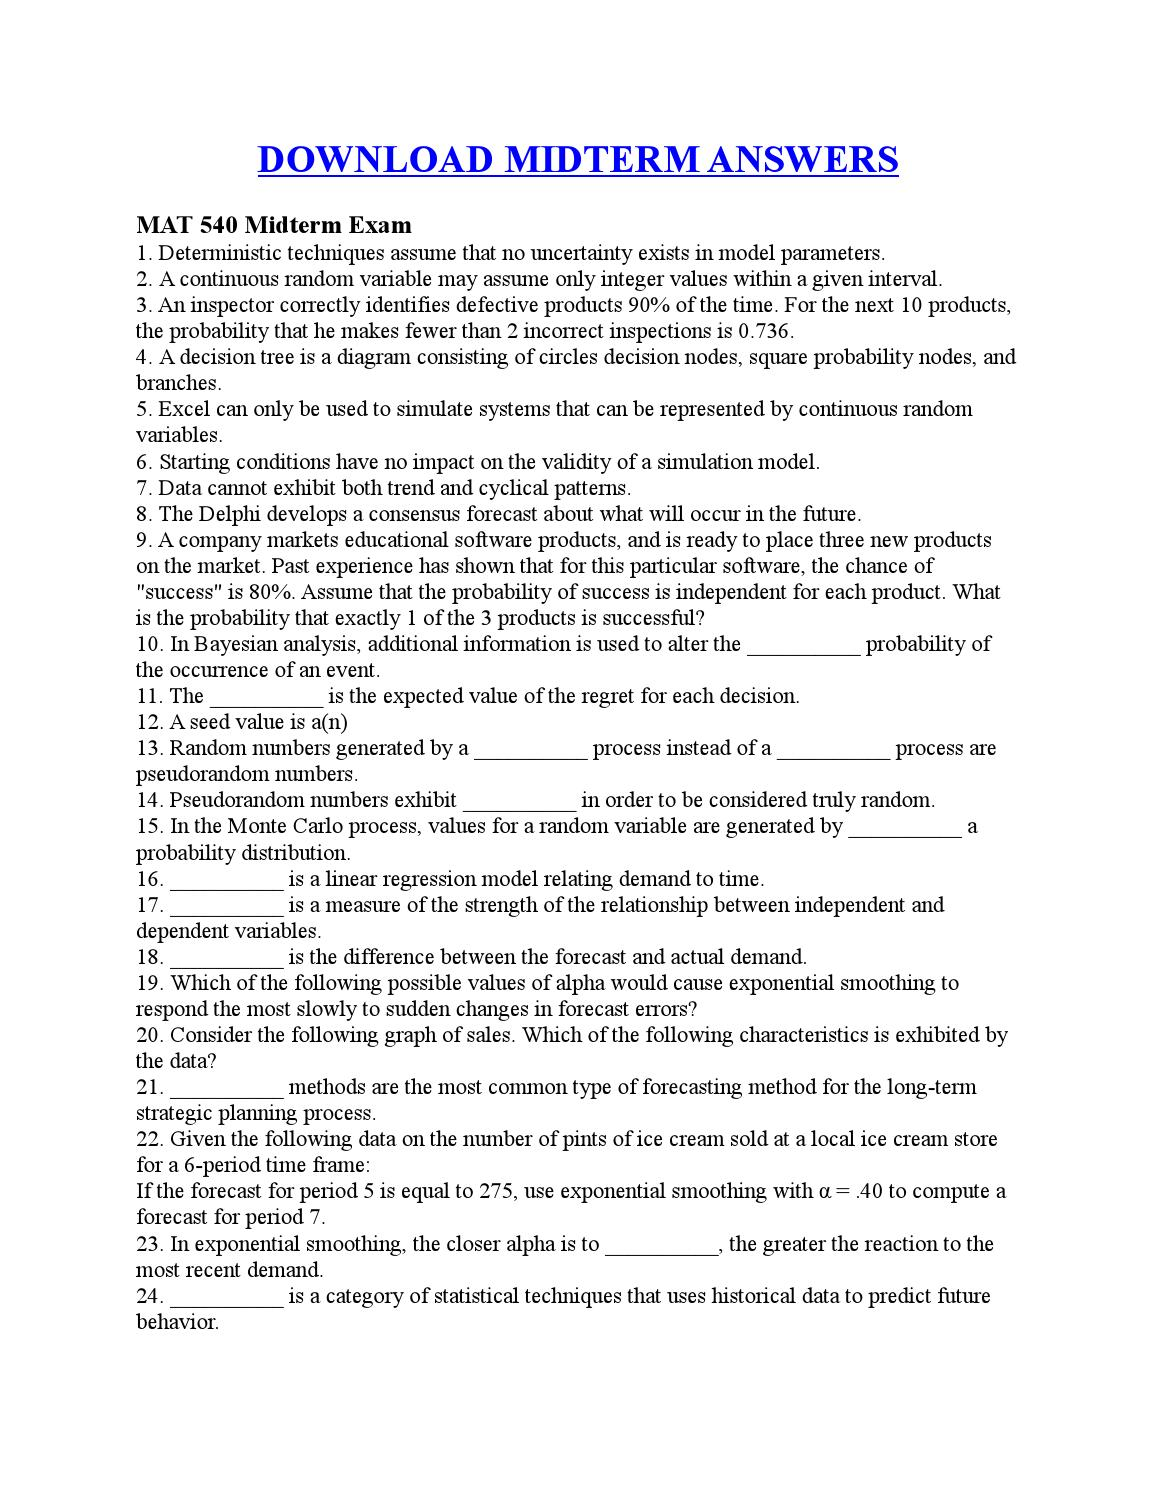 Midterms: What you Need to Know to Succeed! - ExamTime